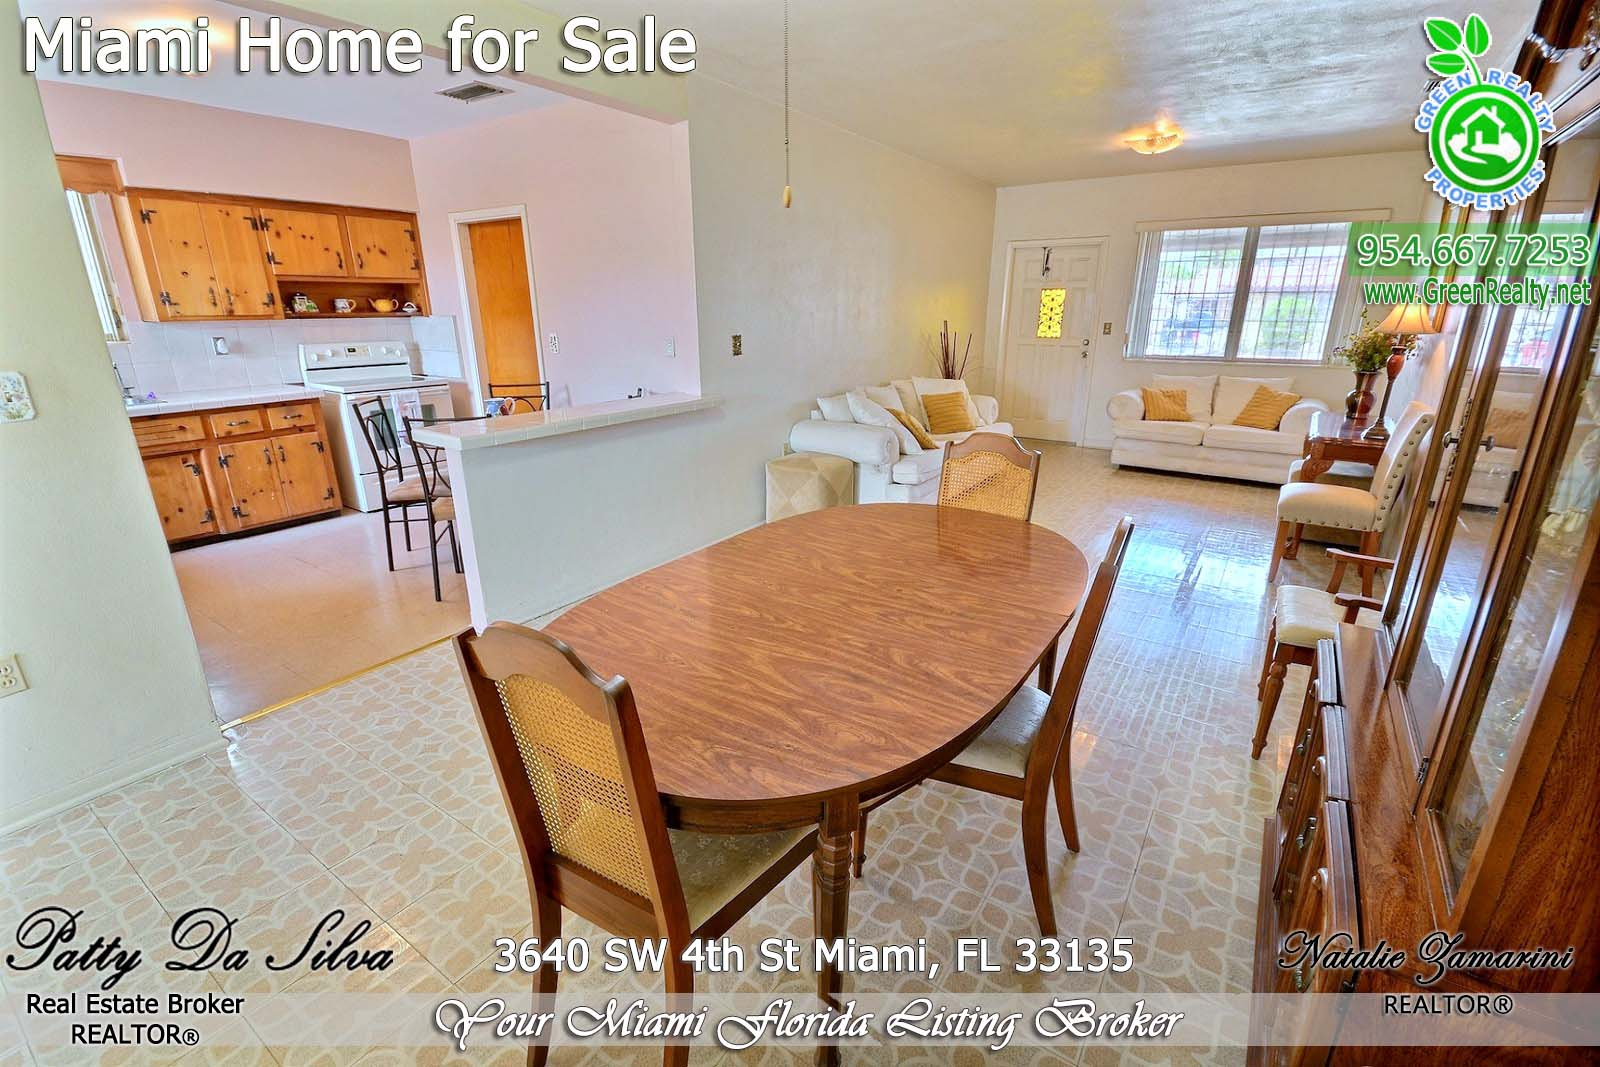 Miami Homes For Sale